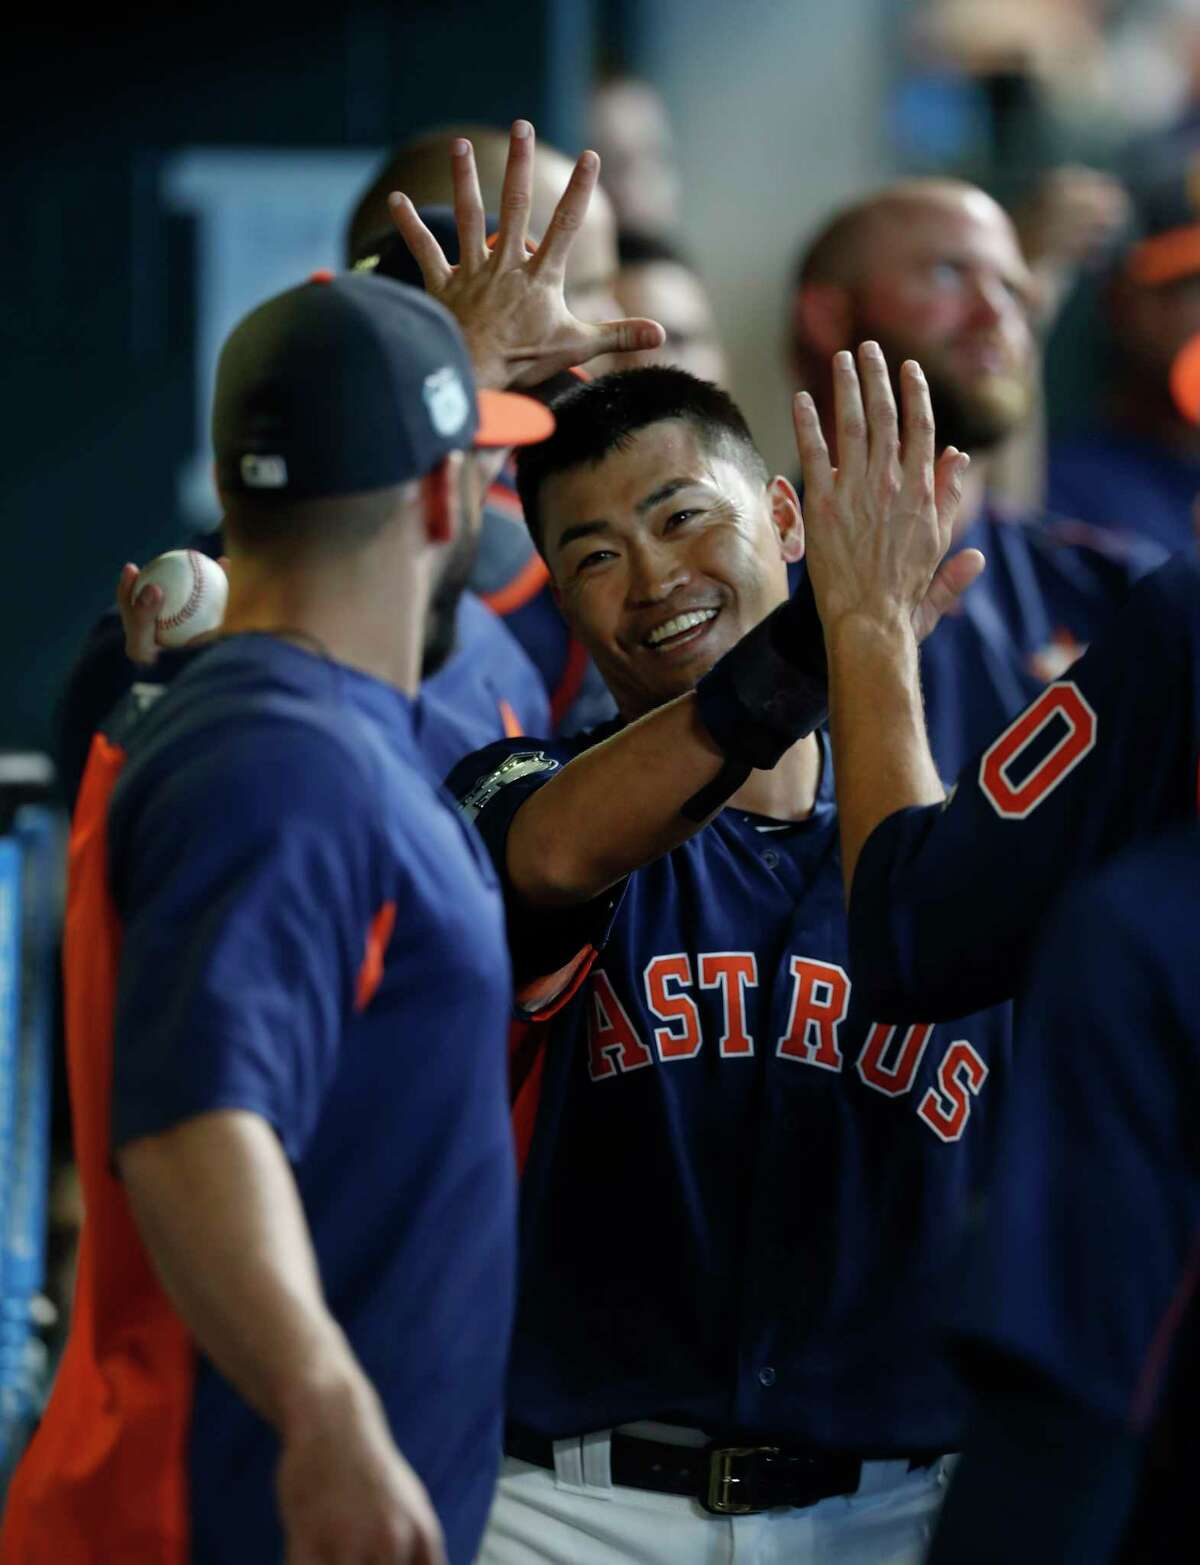 Houston Astros left fielder Norichika Aoki (3) celebrates his run scored in the dugout during the sixth inning of an MLB exhibition game at Minute Maid Park, Friday, March 31, 2017, in Houston.